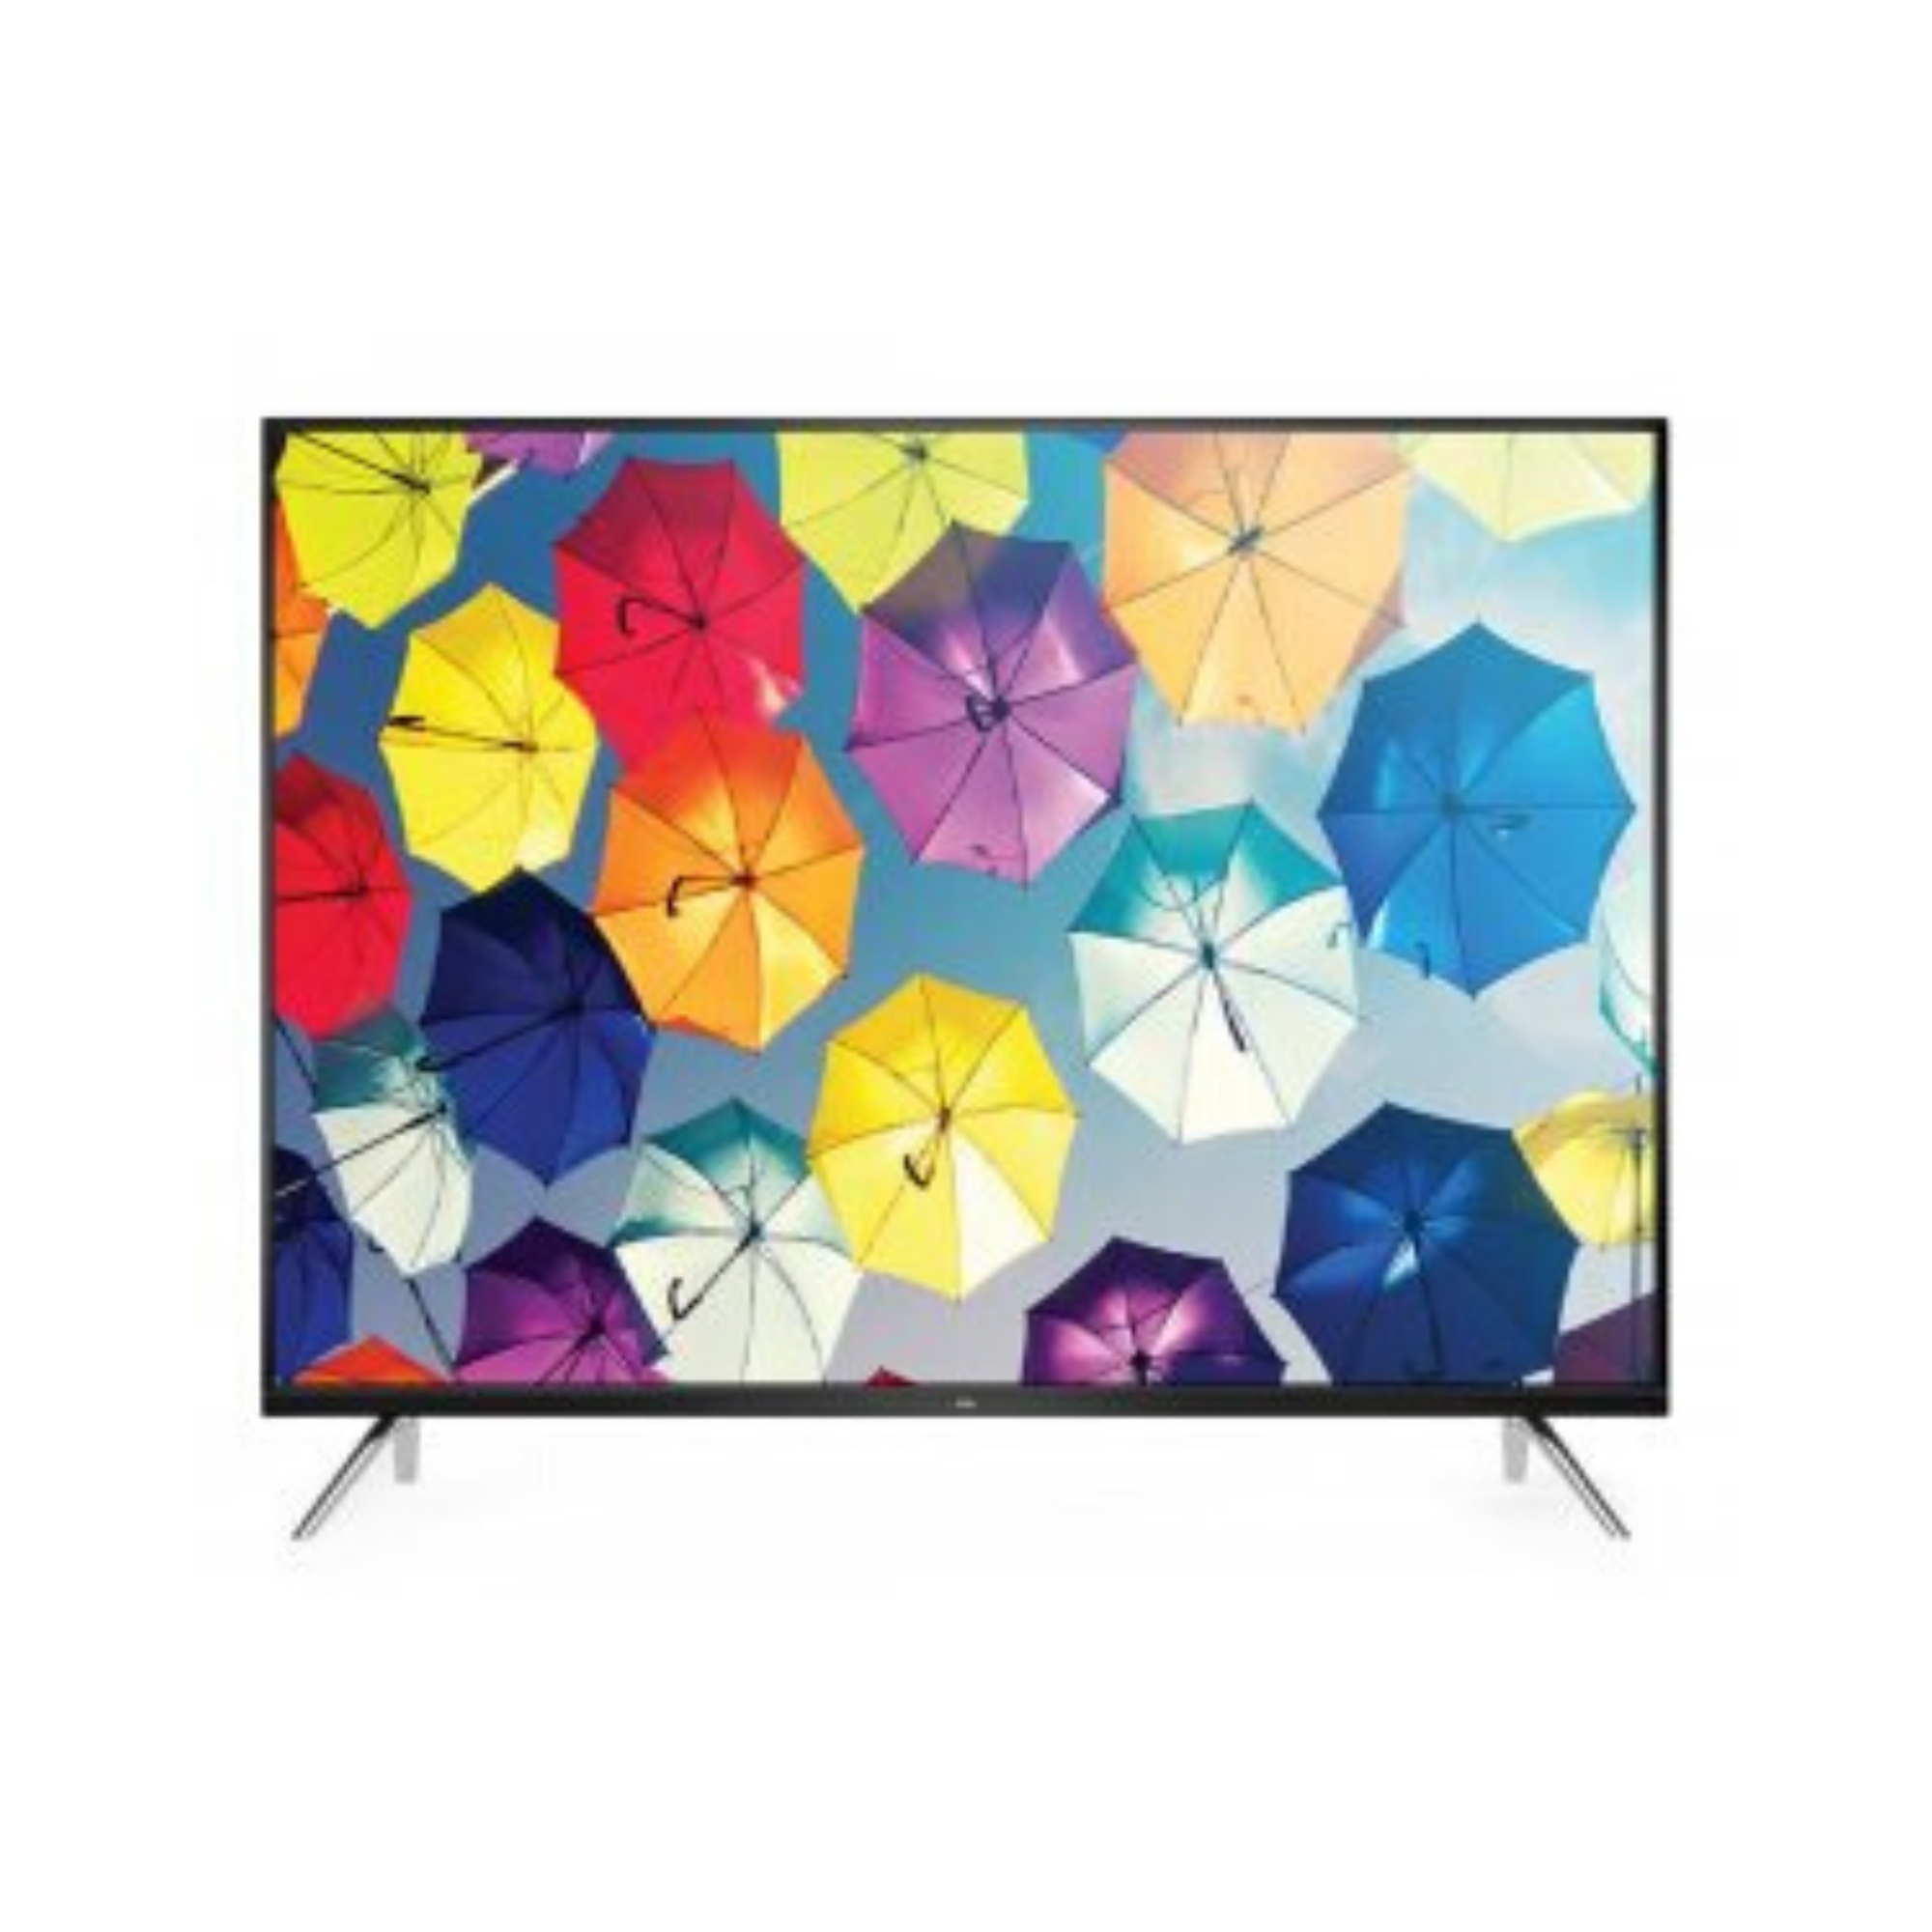 TCL Series S 32 inch S6500 HD Smart TV